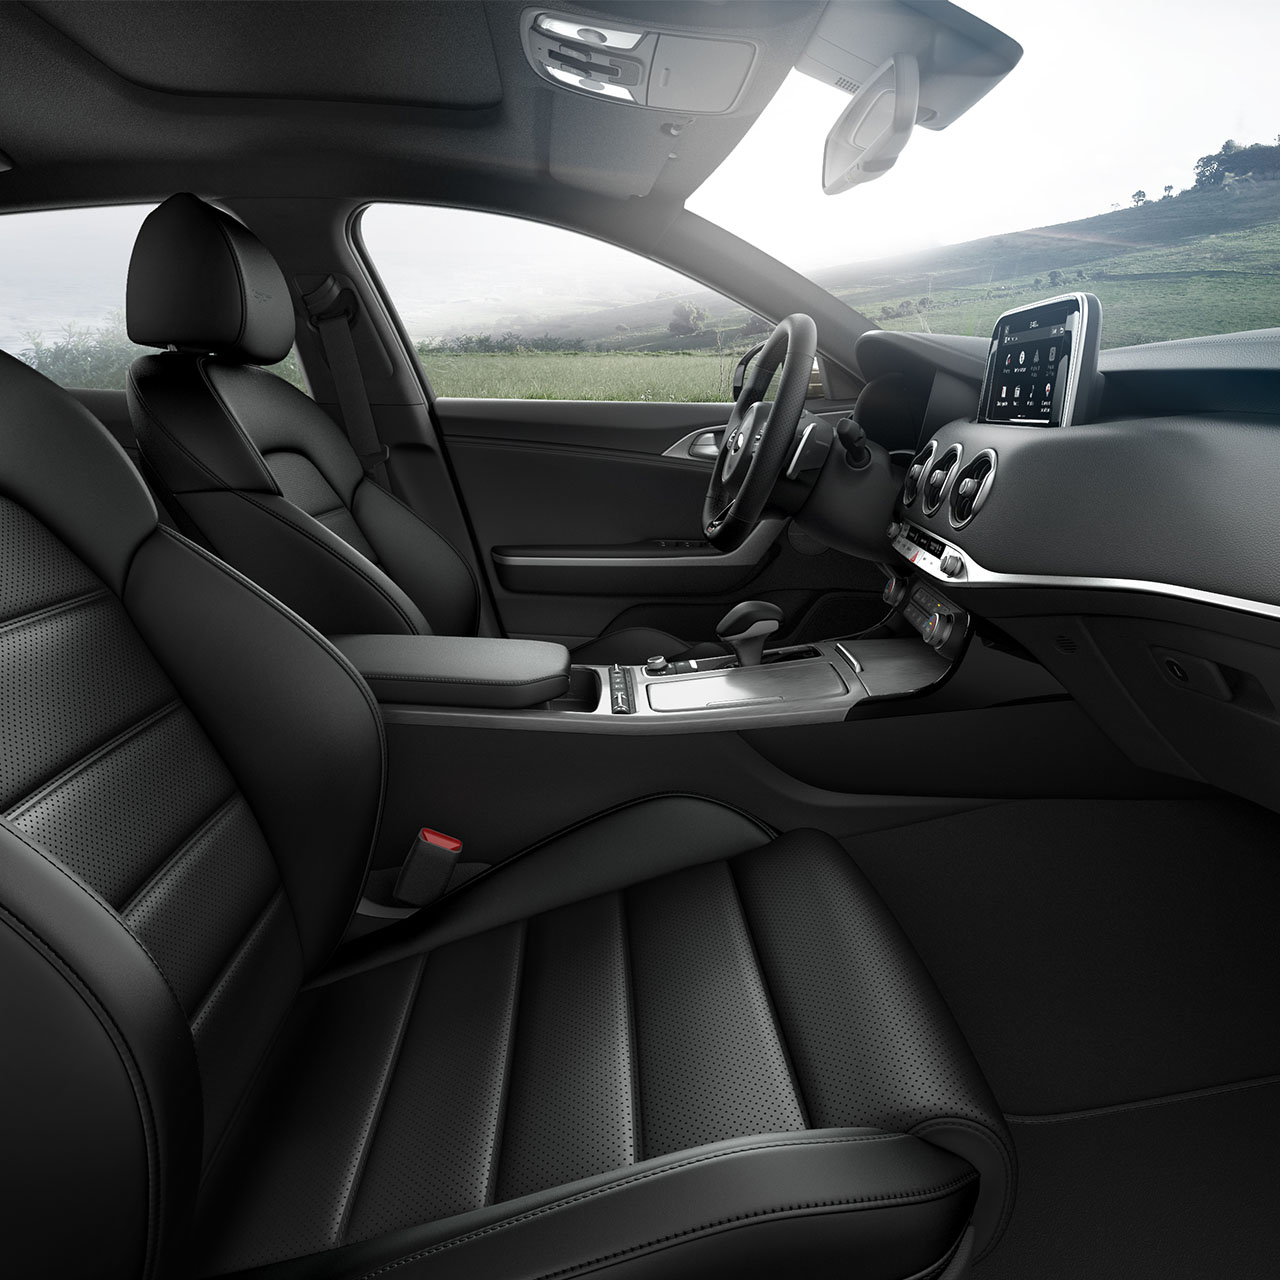 Accommodating Cabin of the 2018 Stinger